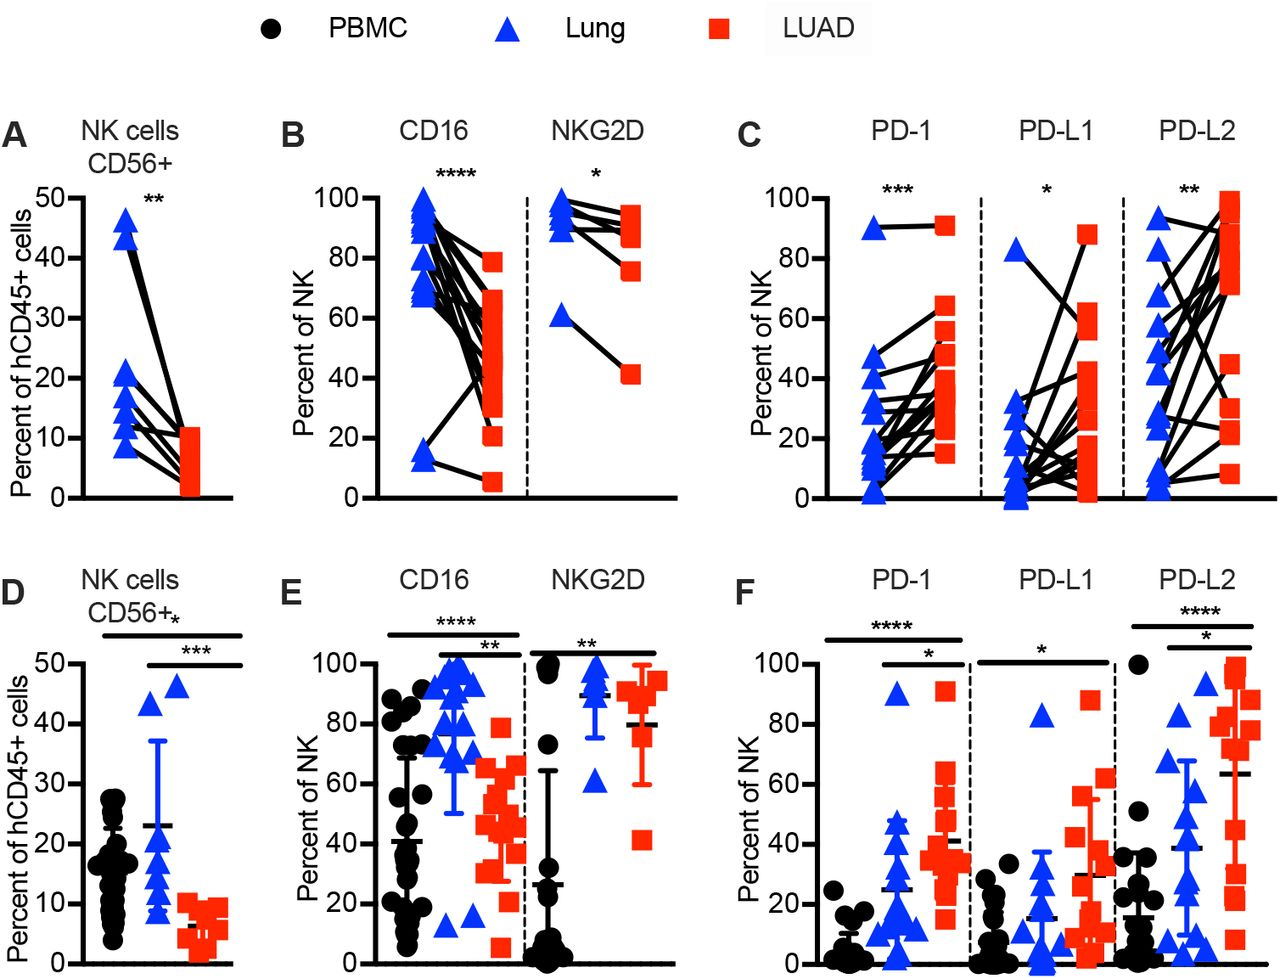 Human LUAD associated NK cells are exhausted in phenotype. Immune phenotyping of human NK cells in indicated tissues by flow cytometry. ( A, D ) Frequency of human NK cells (CD45 + CD3 − CD56 + ) in donor-matched lung vs. NSCLC (LUAD) tissue. ( B, E ) Frequency of CD16 and/or NKG2D expressing human NK cells, ( C, F ) Frequency of PD-1, PDL-1 and/or PDL-2-expressing human NK cells in donor-matched lung-tissue vs. LUAD ( A-C, top ), or LUAD-patient derived PBMC, lung tissue and LUAD ( D-F, bottom ). Each data point represents one genetically unrelated human donor (N= eight to 31 depending on tissue). Paired t-test for donor-matched lung tissue vs. LUAD, one-way ANOVA with post-hoc Tukey test for comparisons between LUAD-patient derived PBMC, lung tissue and LUAD (not always donor matched between all three tissues). *p